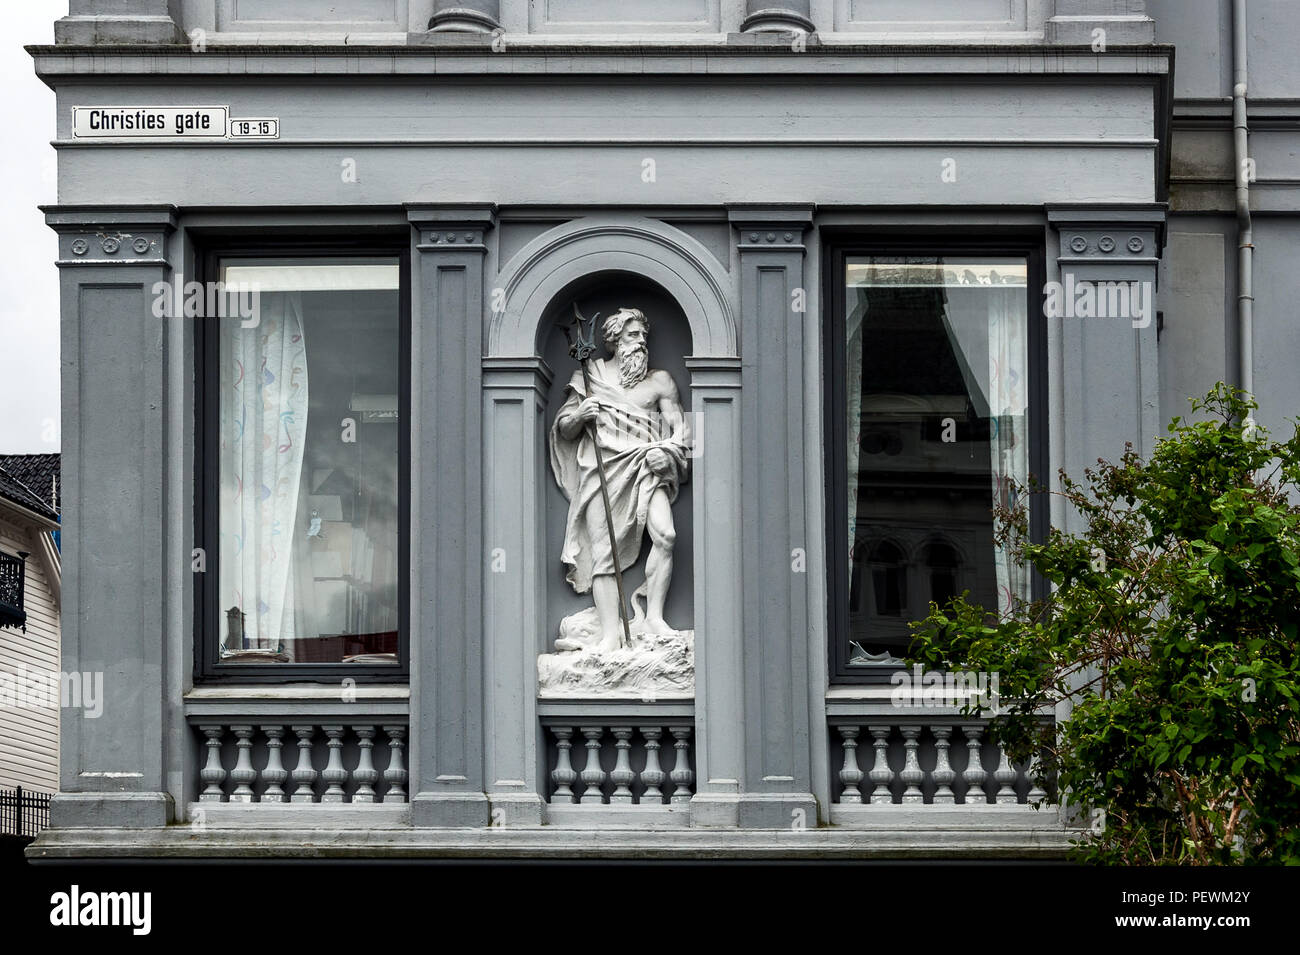 Ornament in Christies Gate, Bergen, Norway - Stock Image